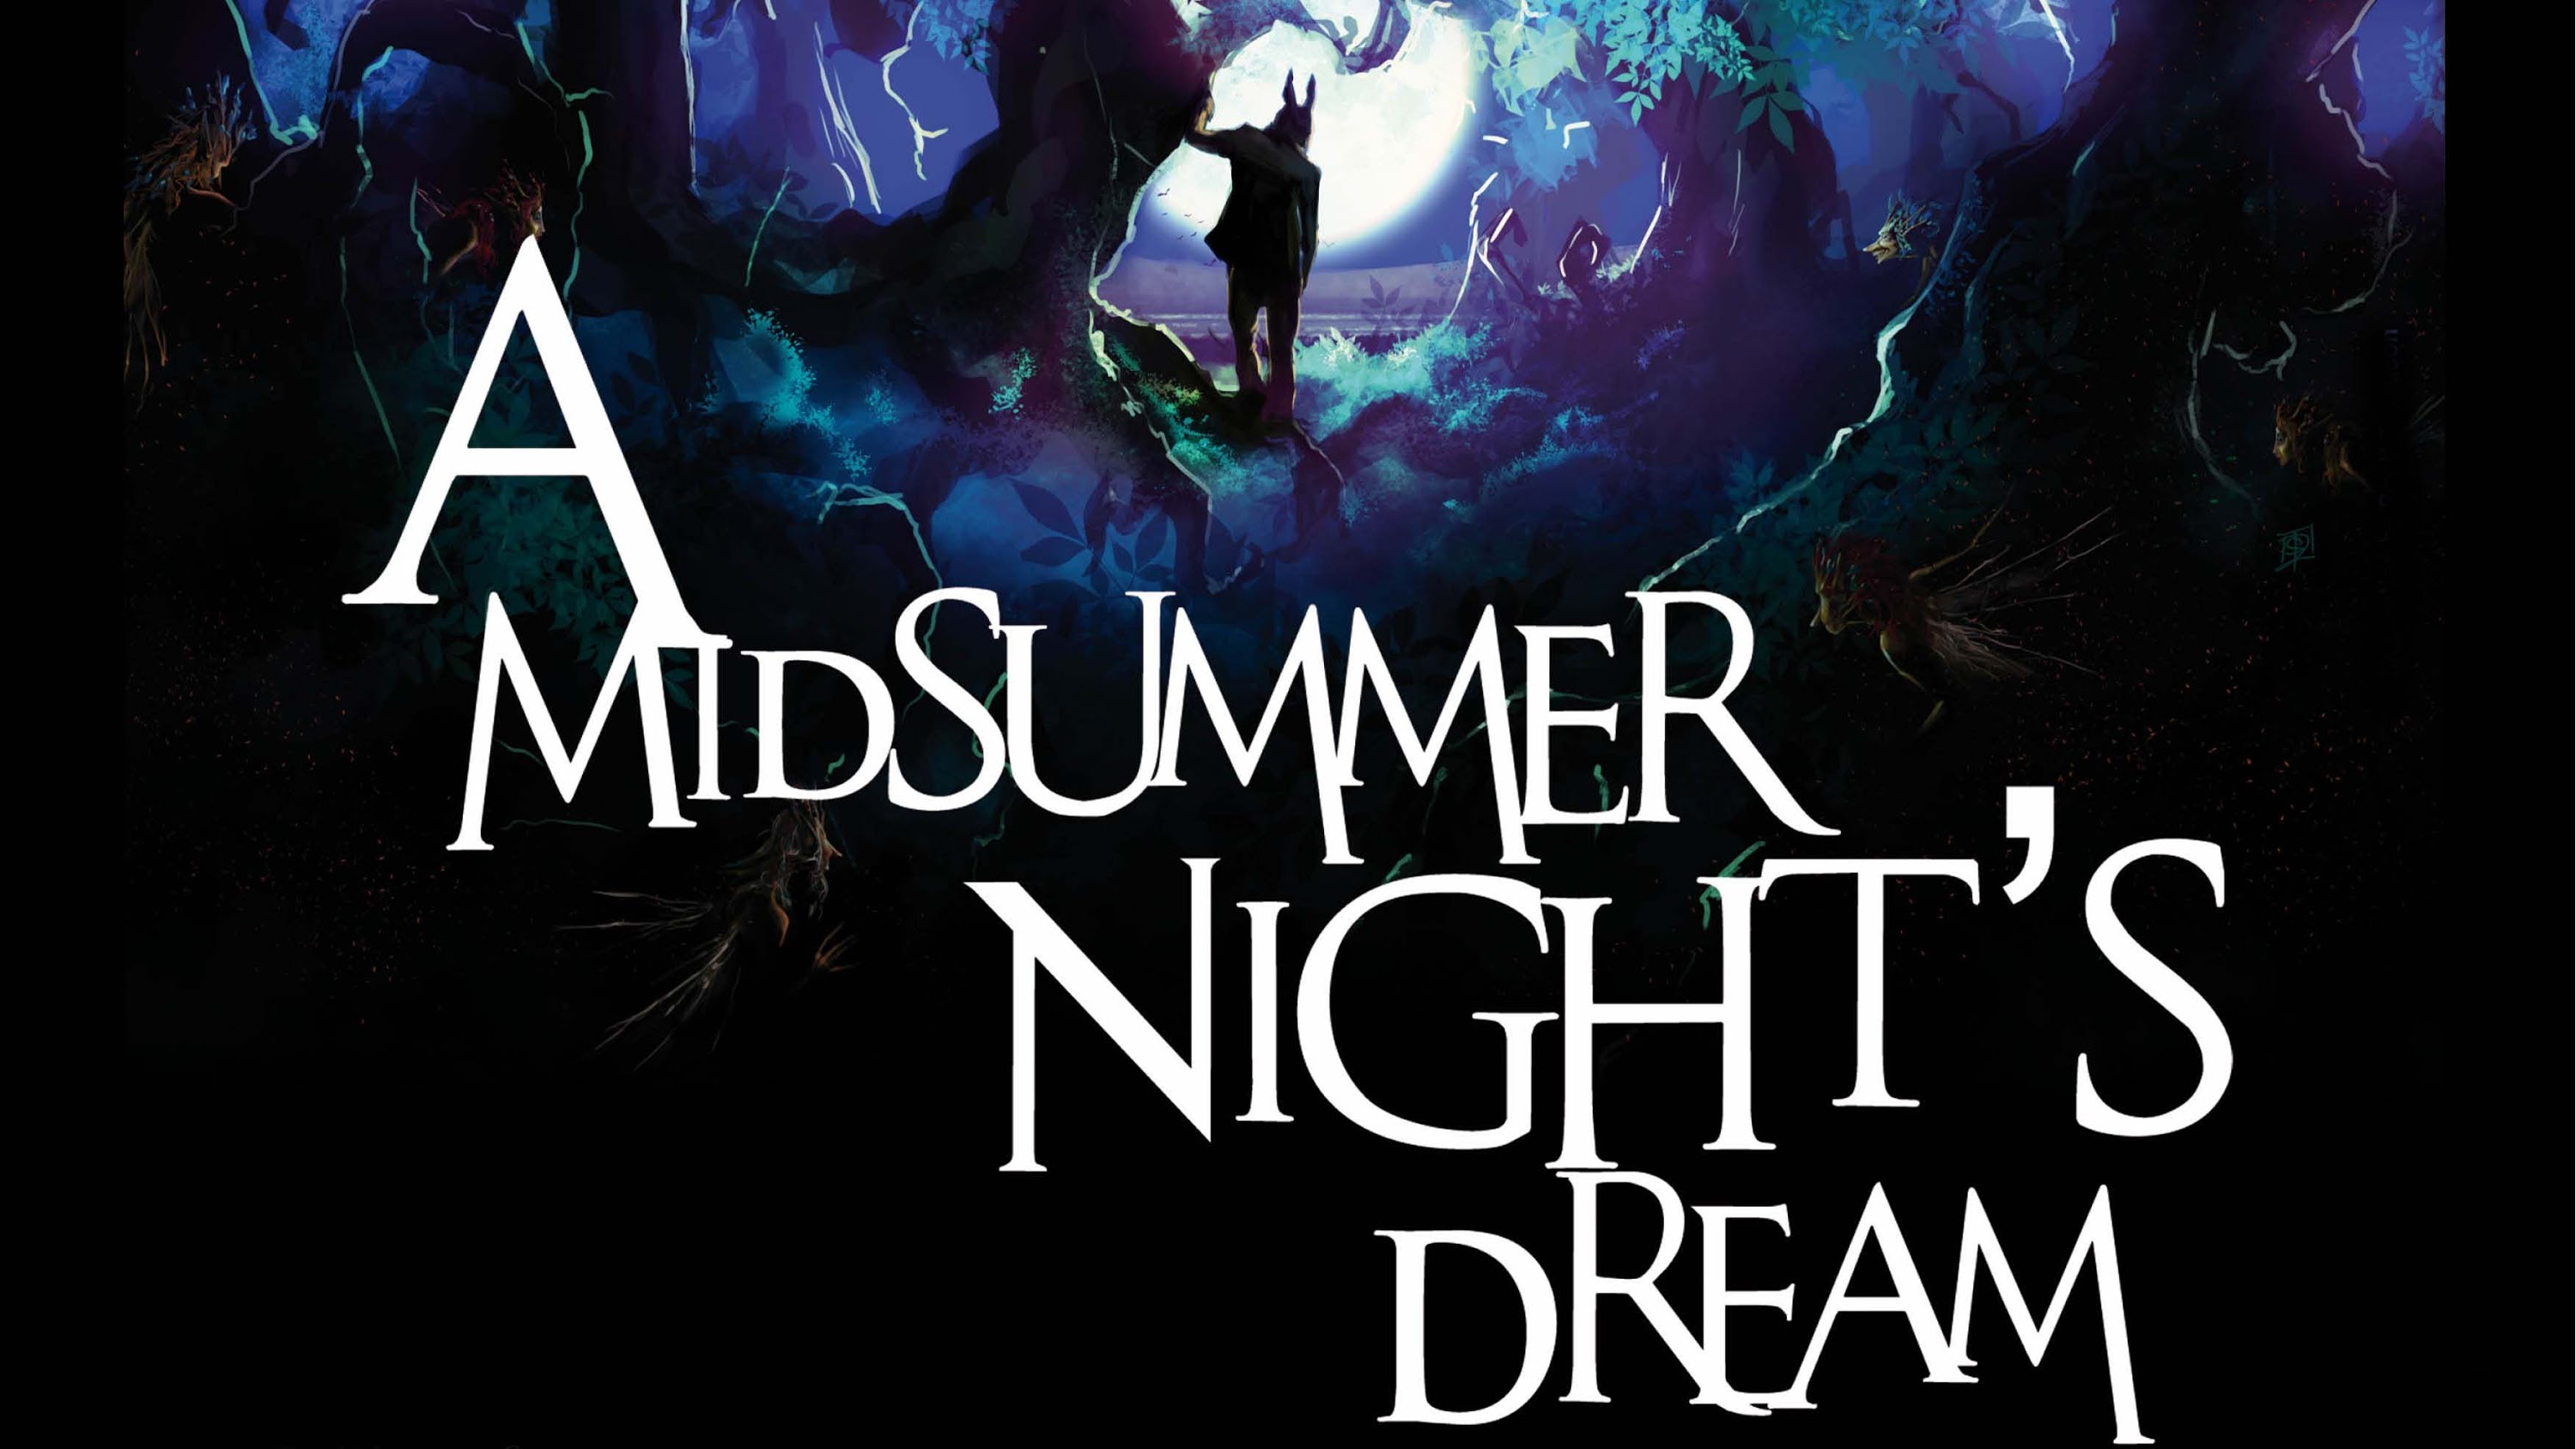 "a midsummer night s dream and the ""a midsummer night's dream"" is purportedly the most-produced of all the bard's plays, but neither that nugget nor its cinematically friendly fantasy elements has done it many favors on film."